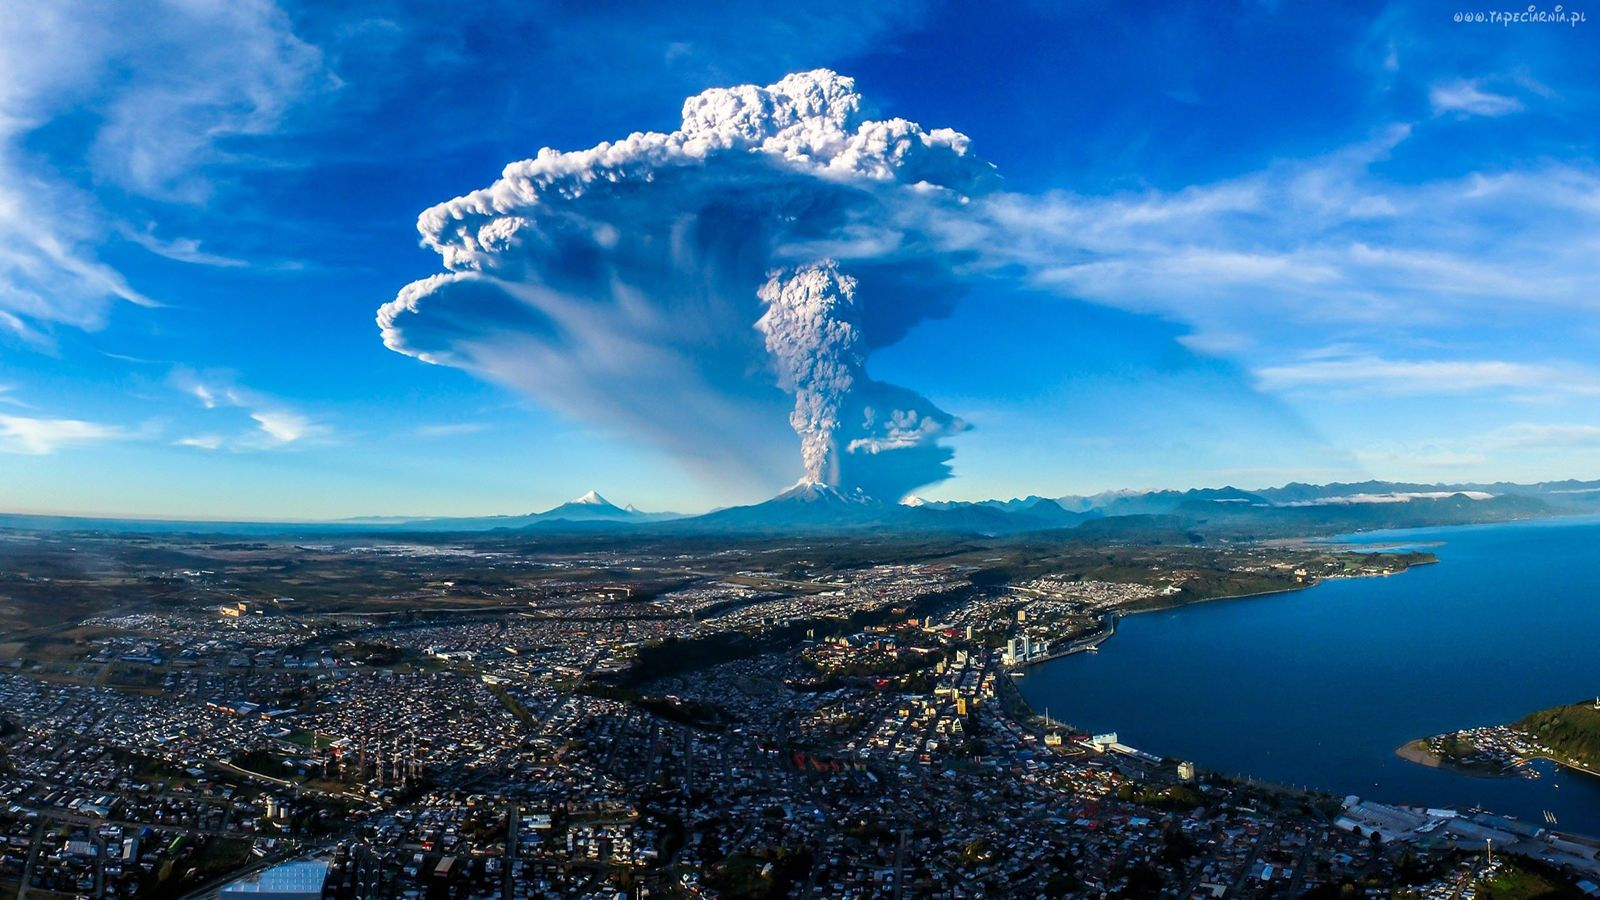 Volcanic Eruption Calbuco Volcano In Chile 1600x900 Hd Nature Wallpapers 4k Wallpapers For Pc Background Hd Wallpaper